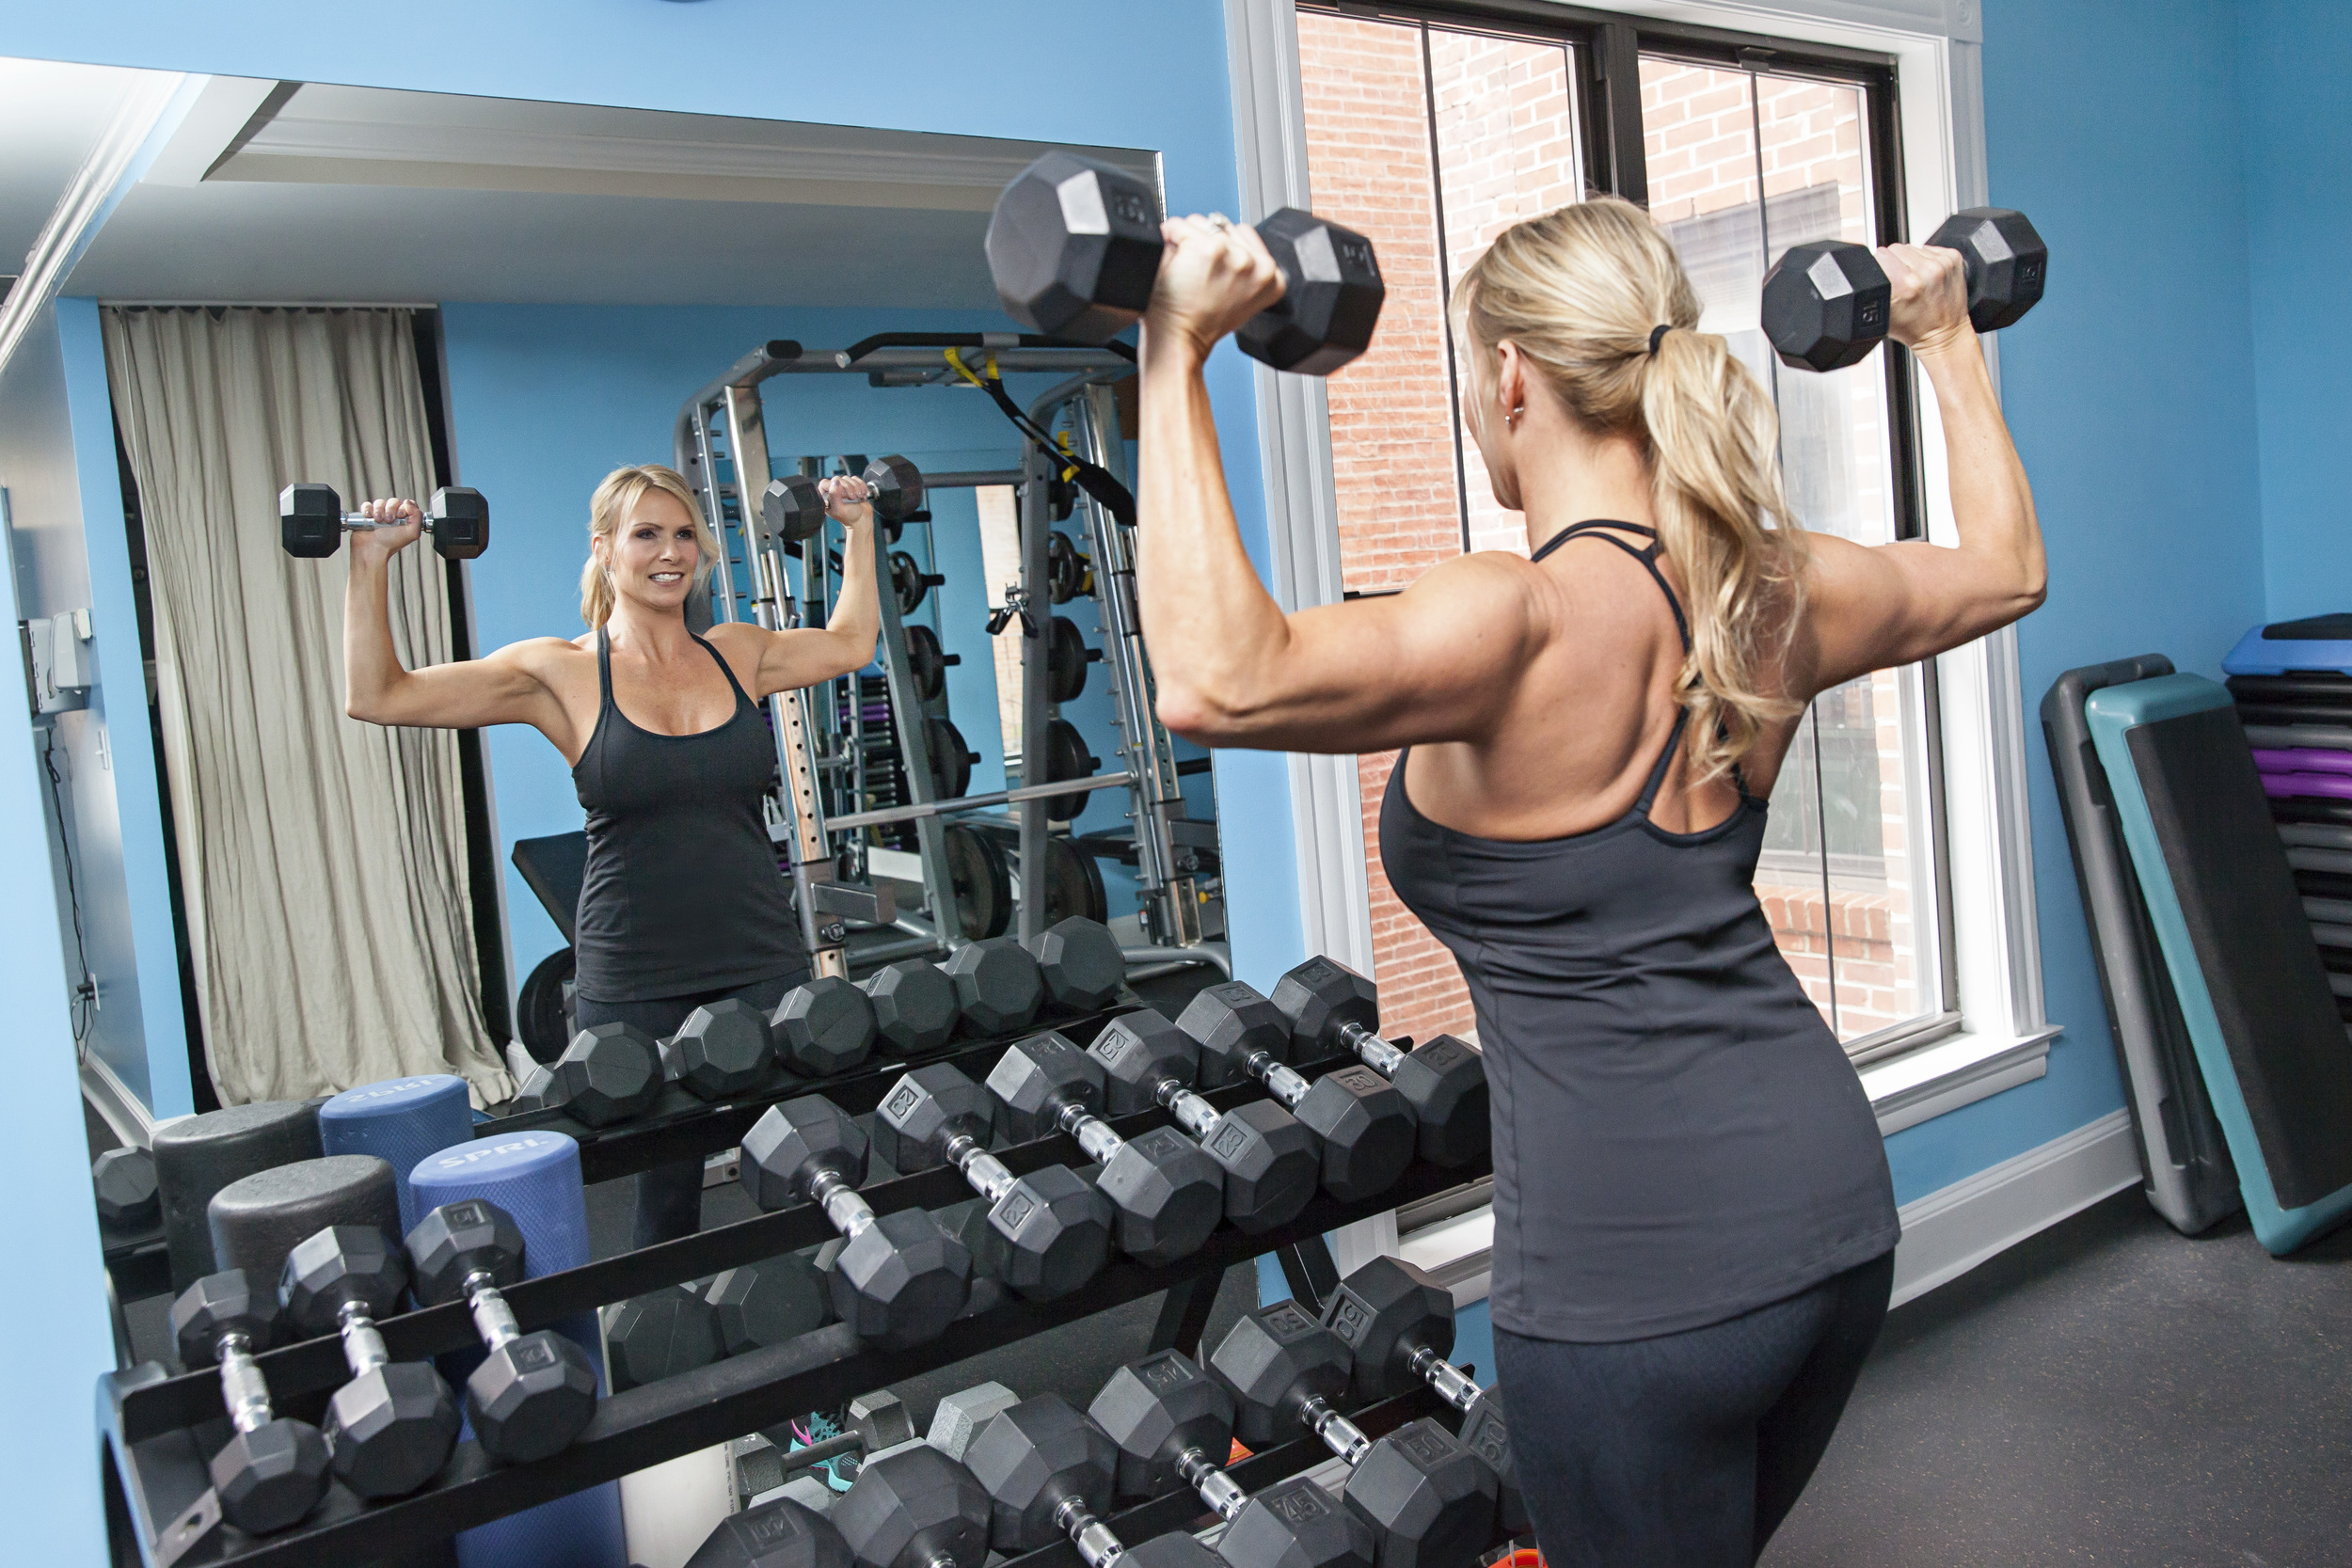 Workout on Your OWN Time with a SRW Personalized Program